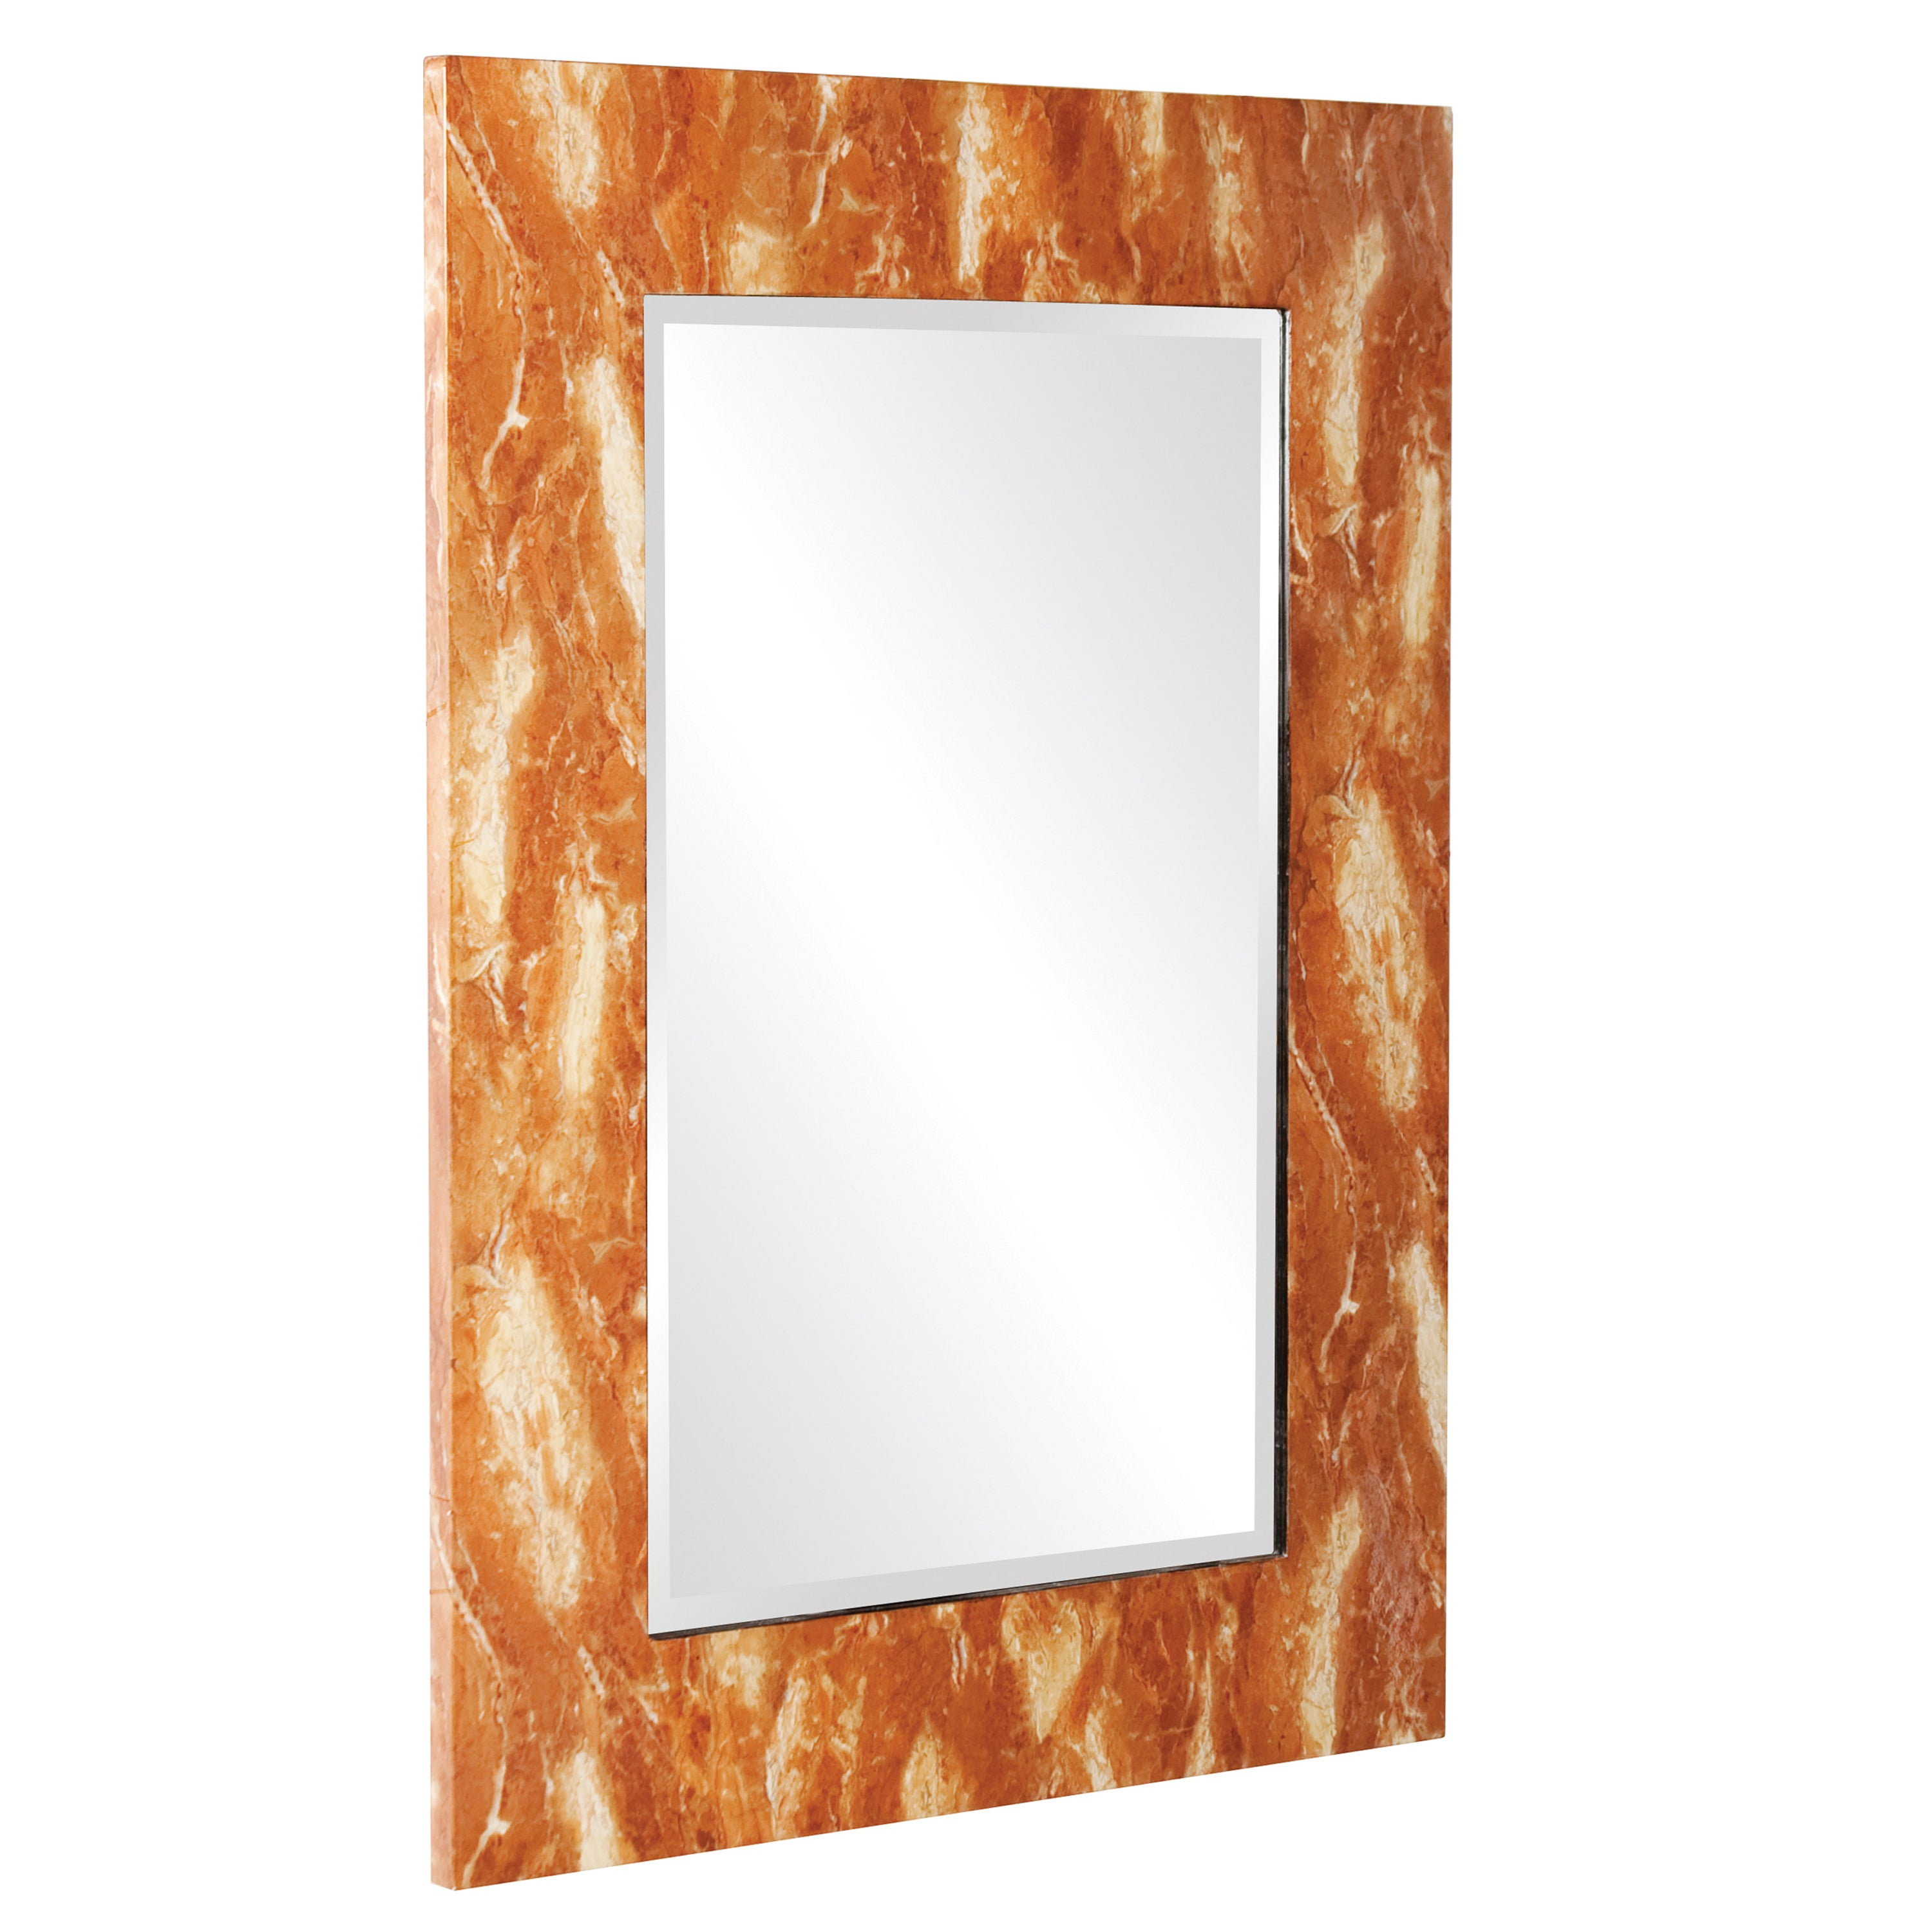 Ross Mirror Free Shipping Today Overstock Com 14036529